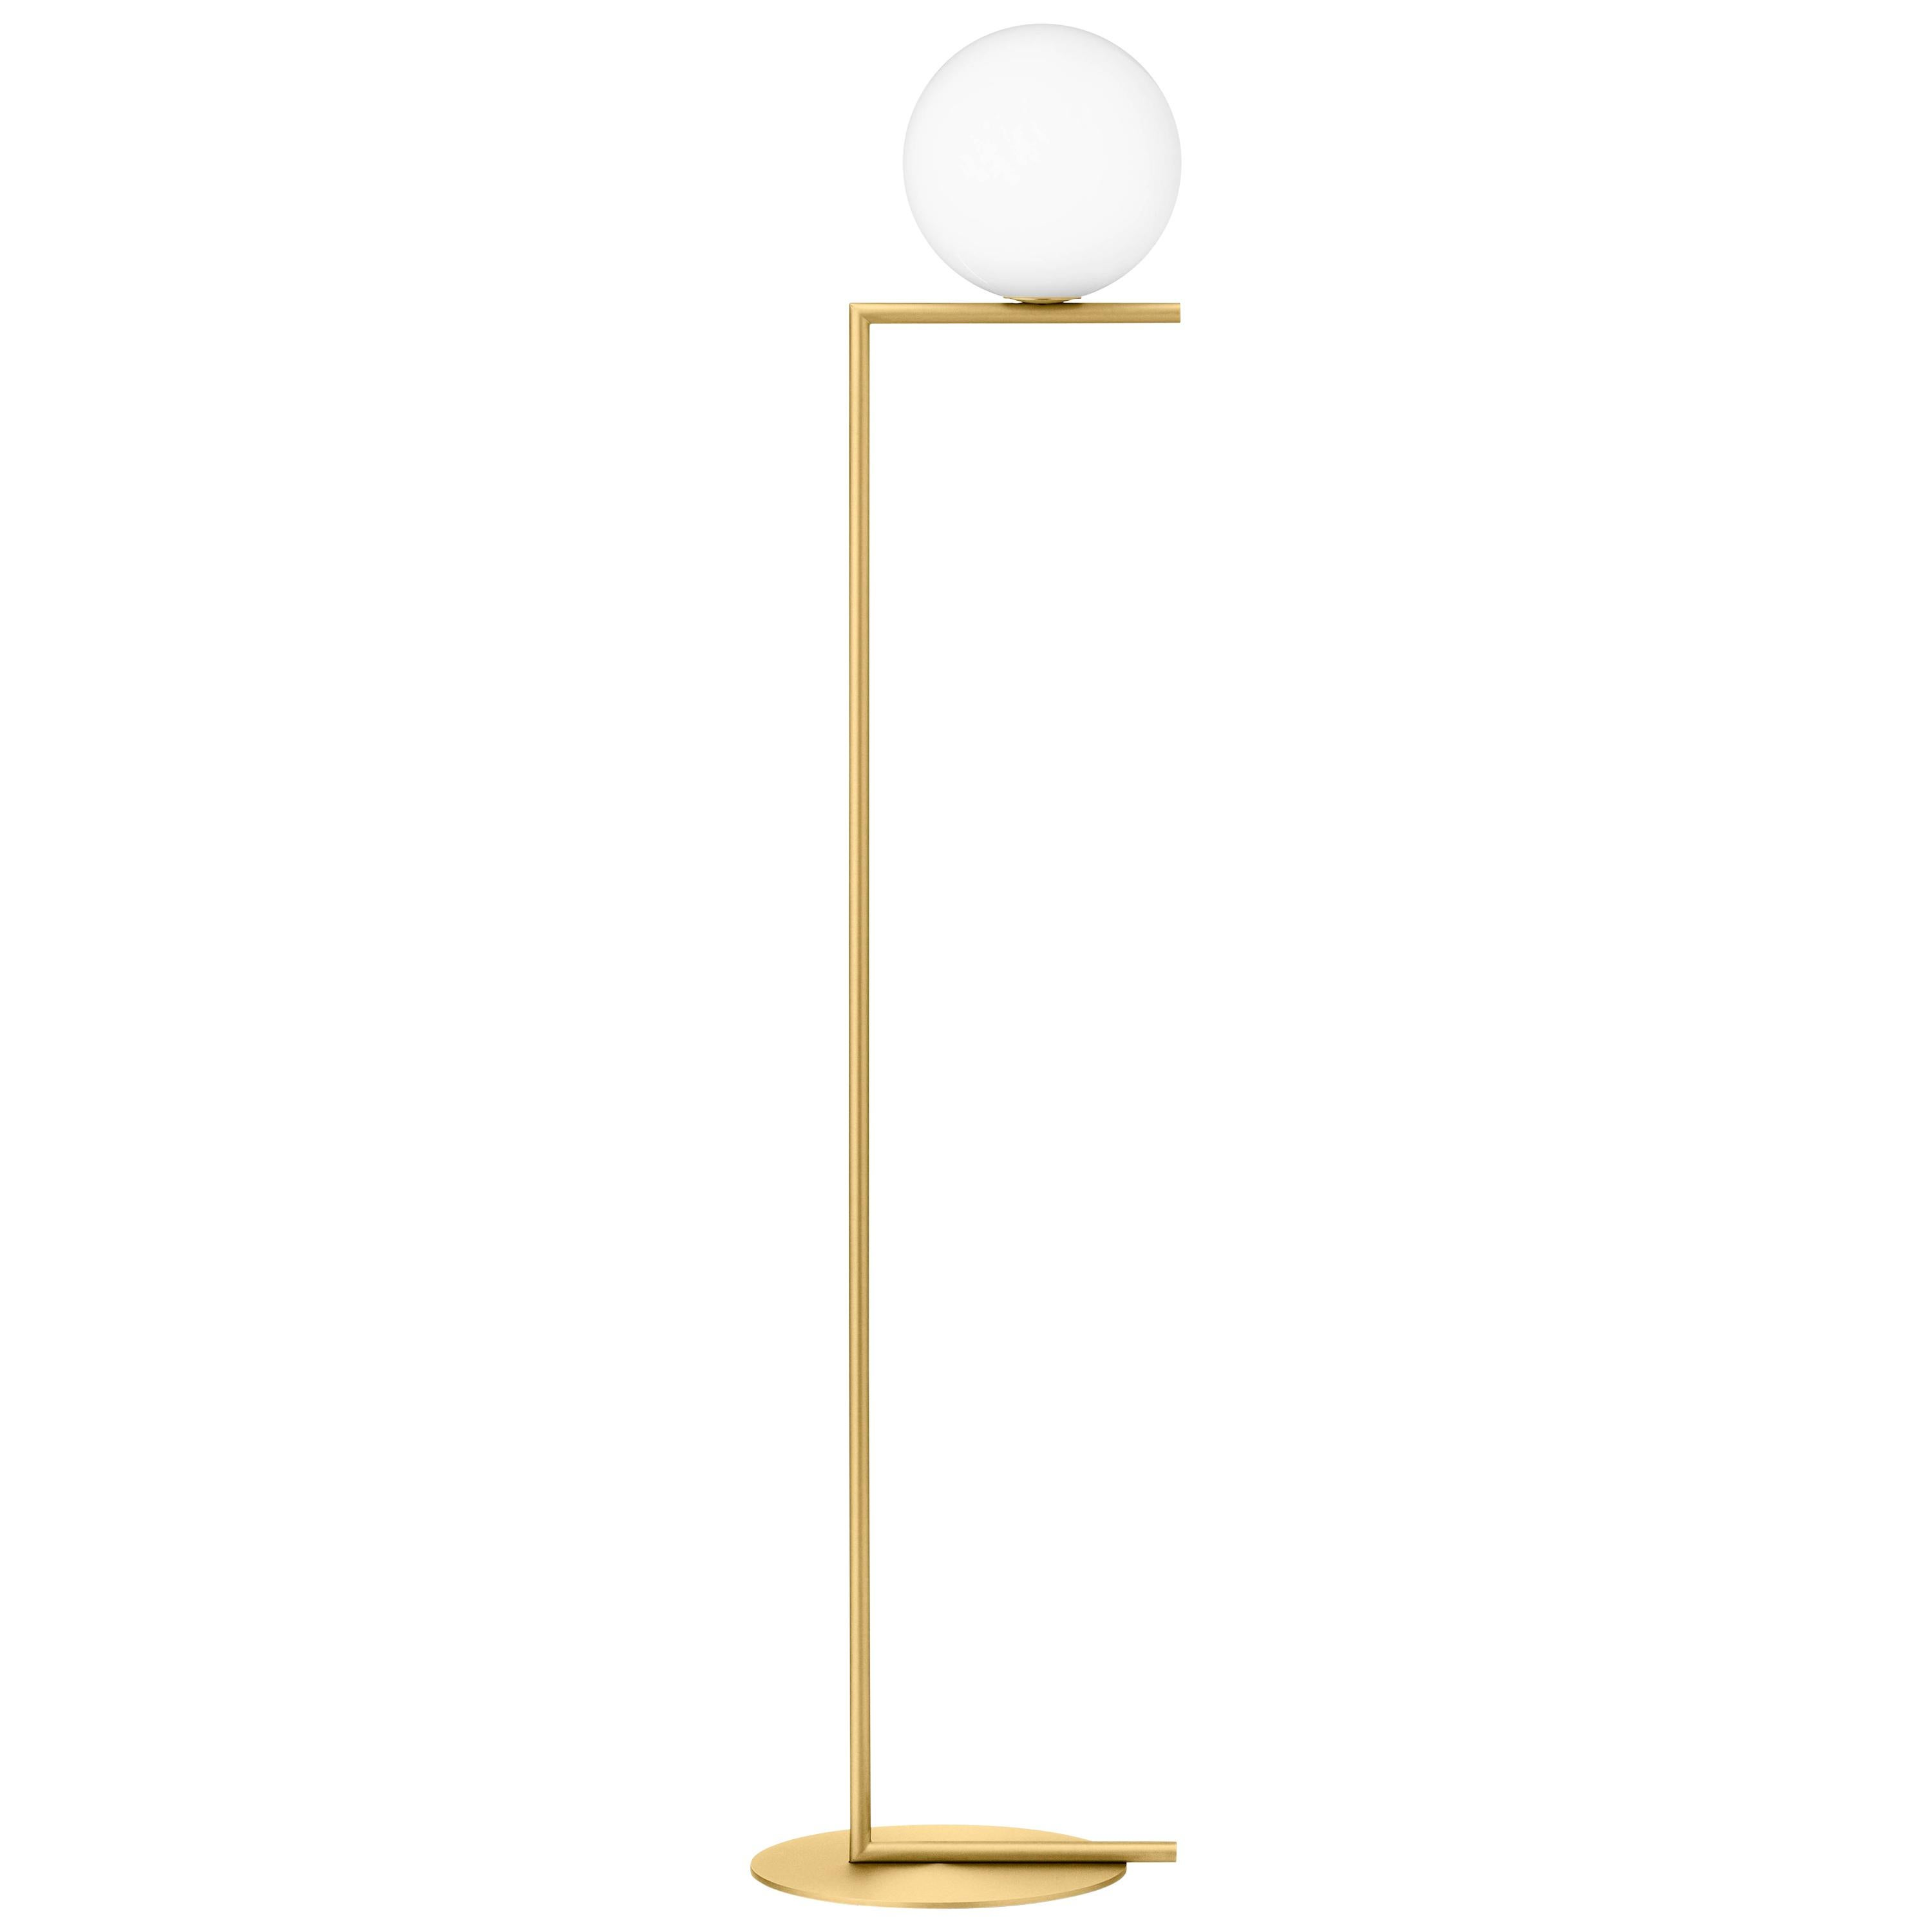 Michael Anastassiades Modern Floor lamp in Brass Base and Glass for FLOS